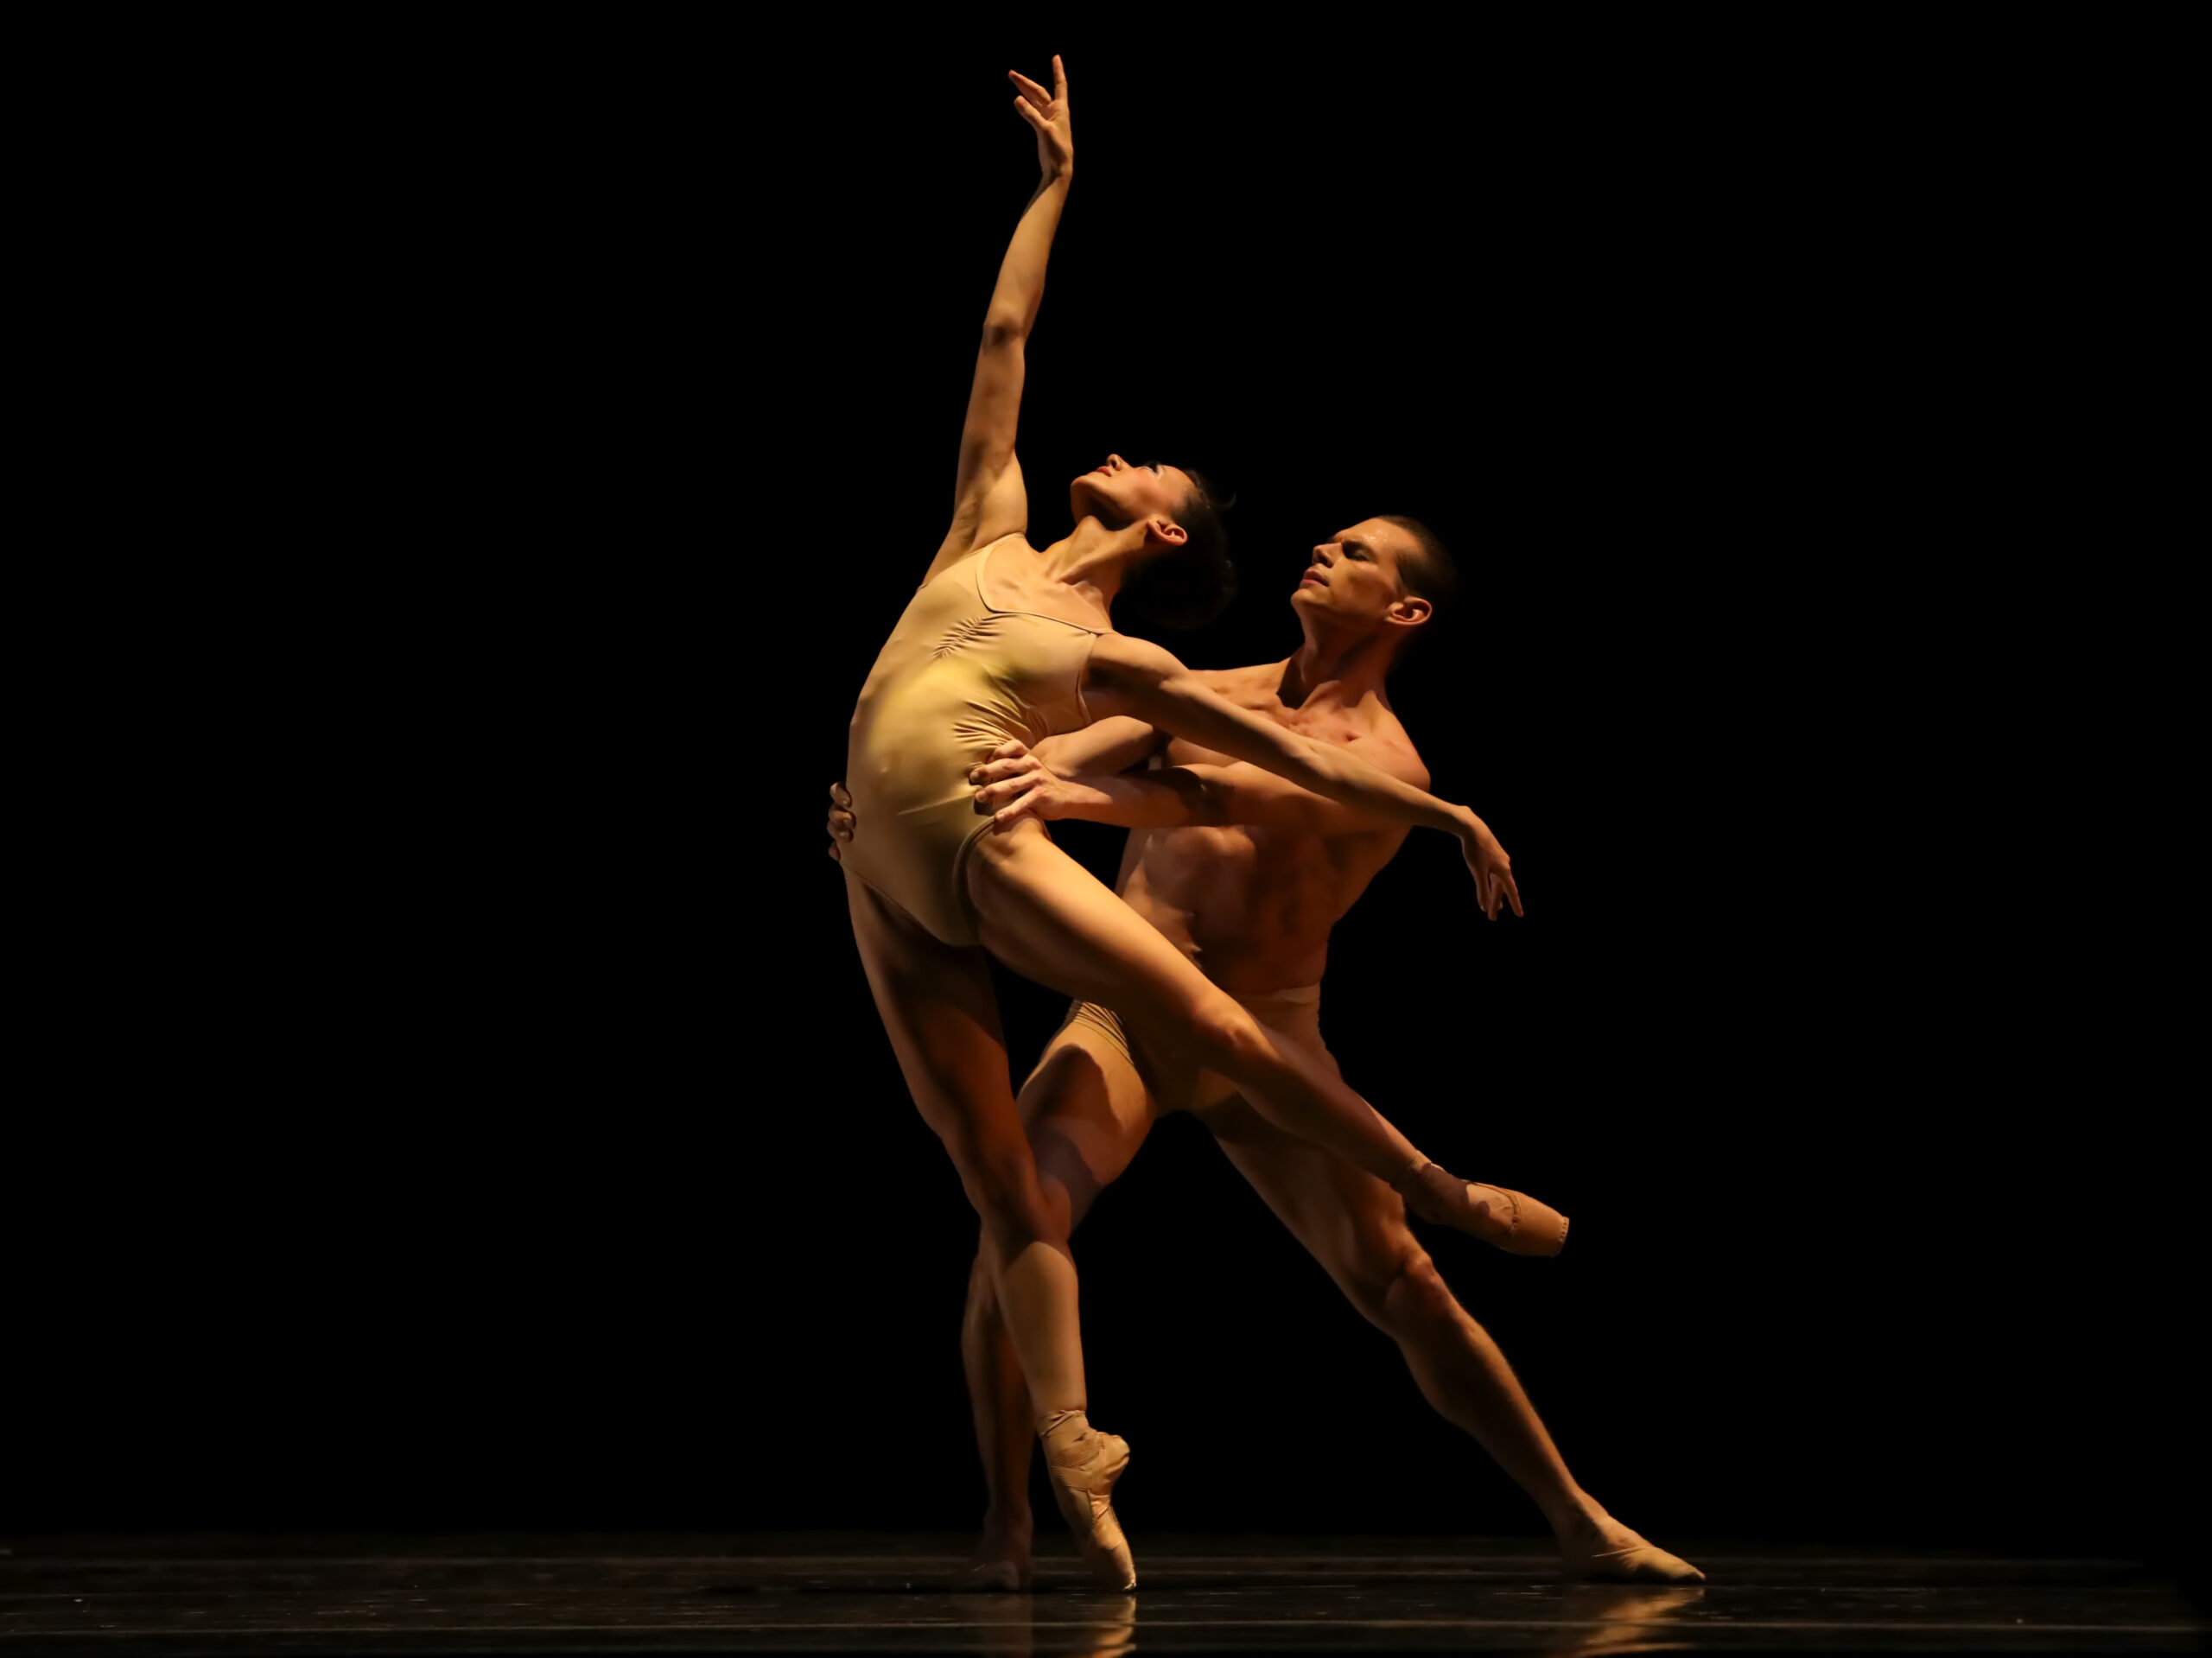 One male and one female dancer under a spotlight.